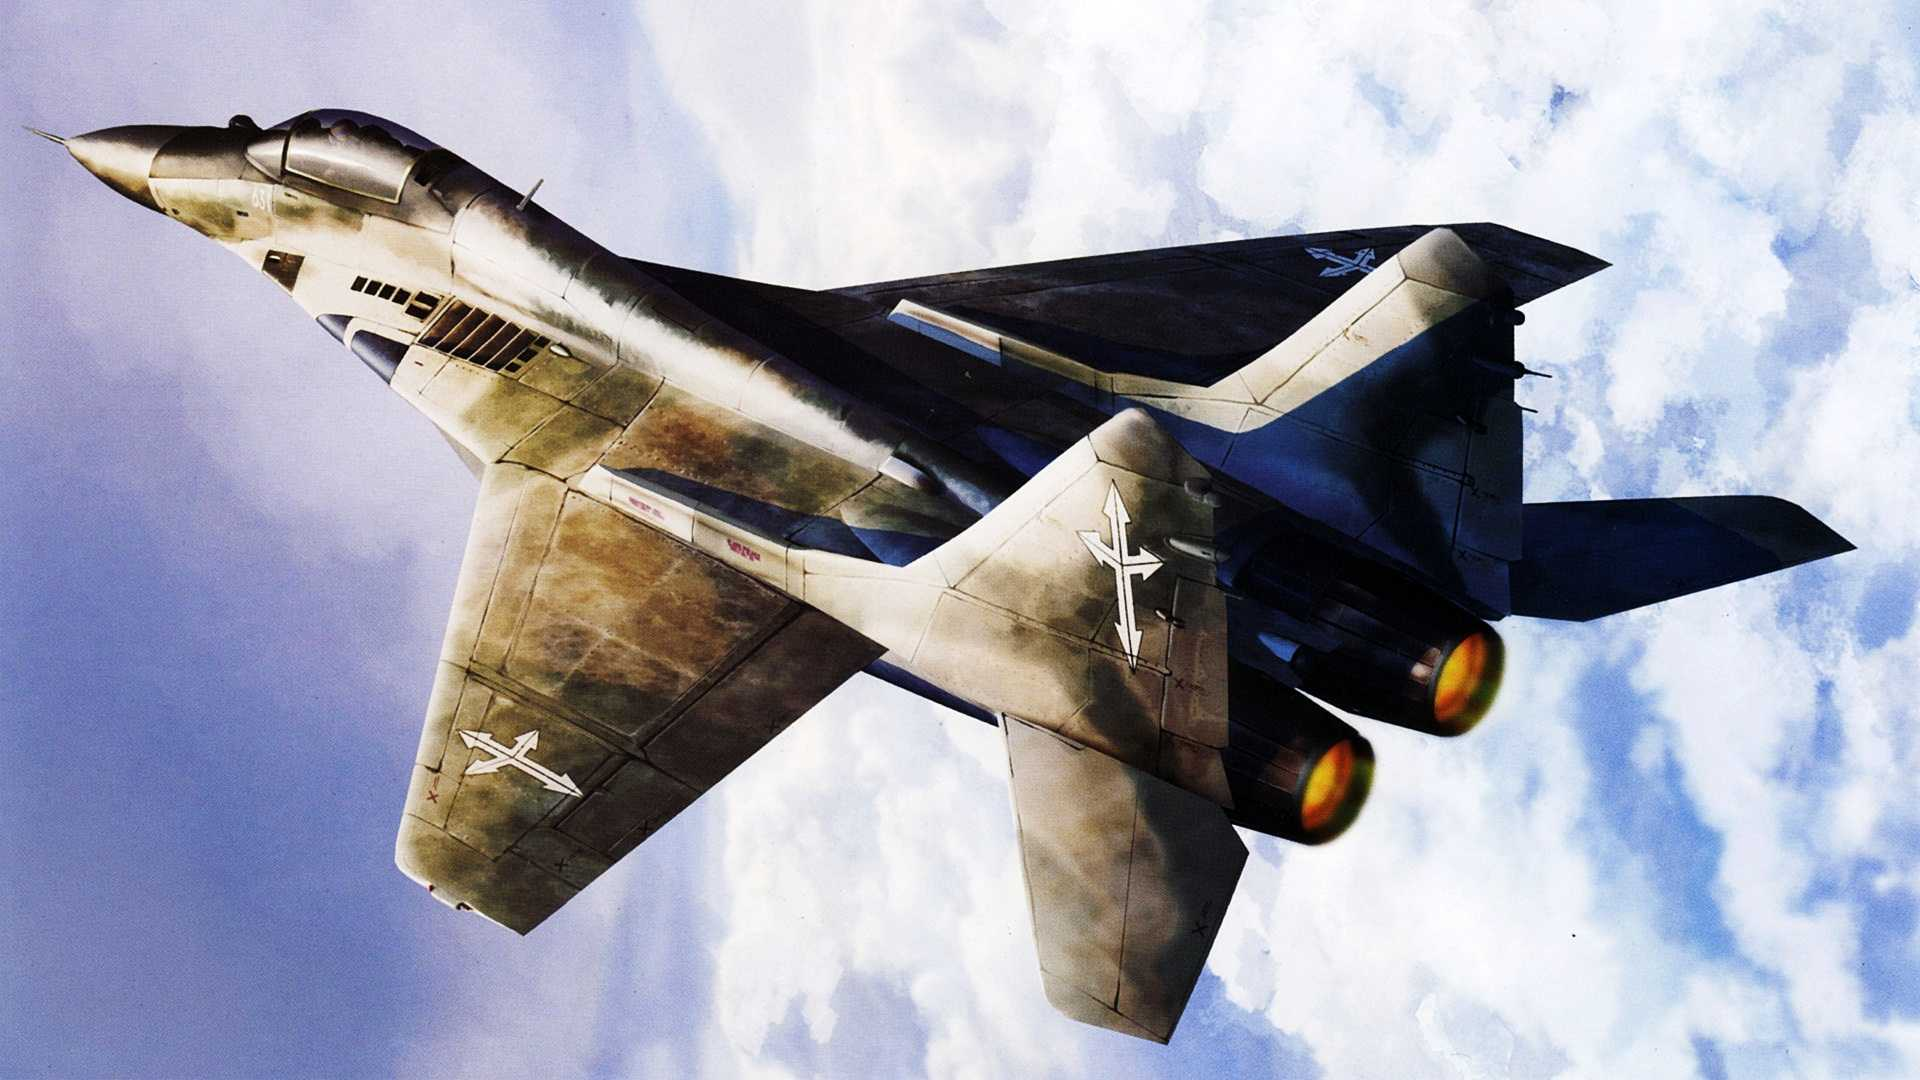 U.S. Air Force Fighter